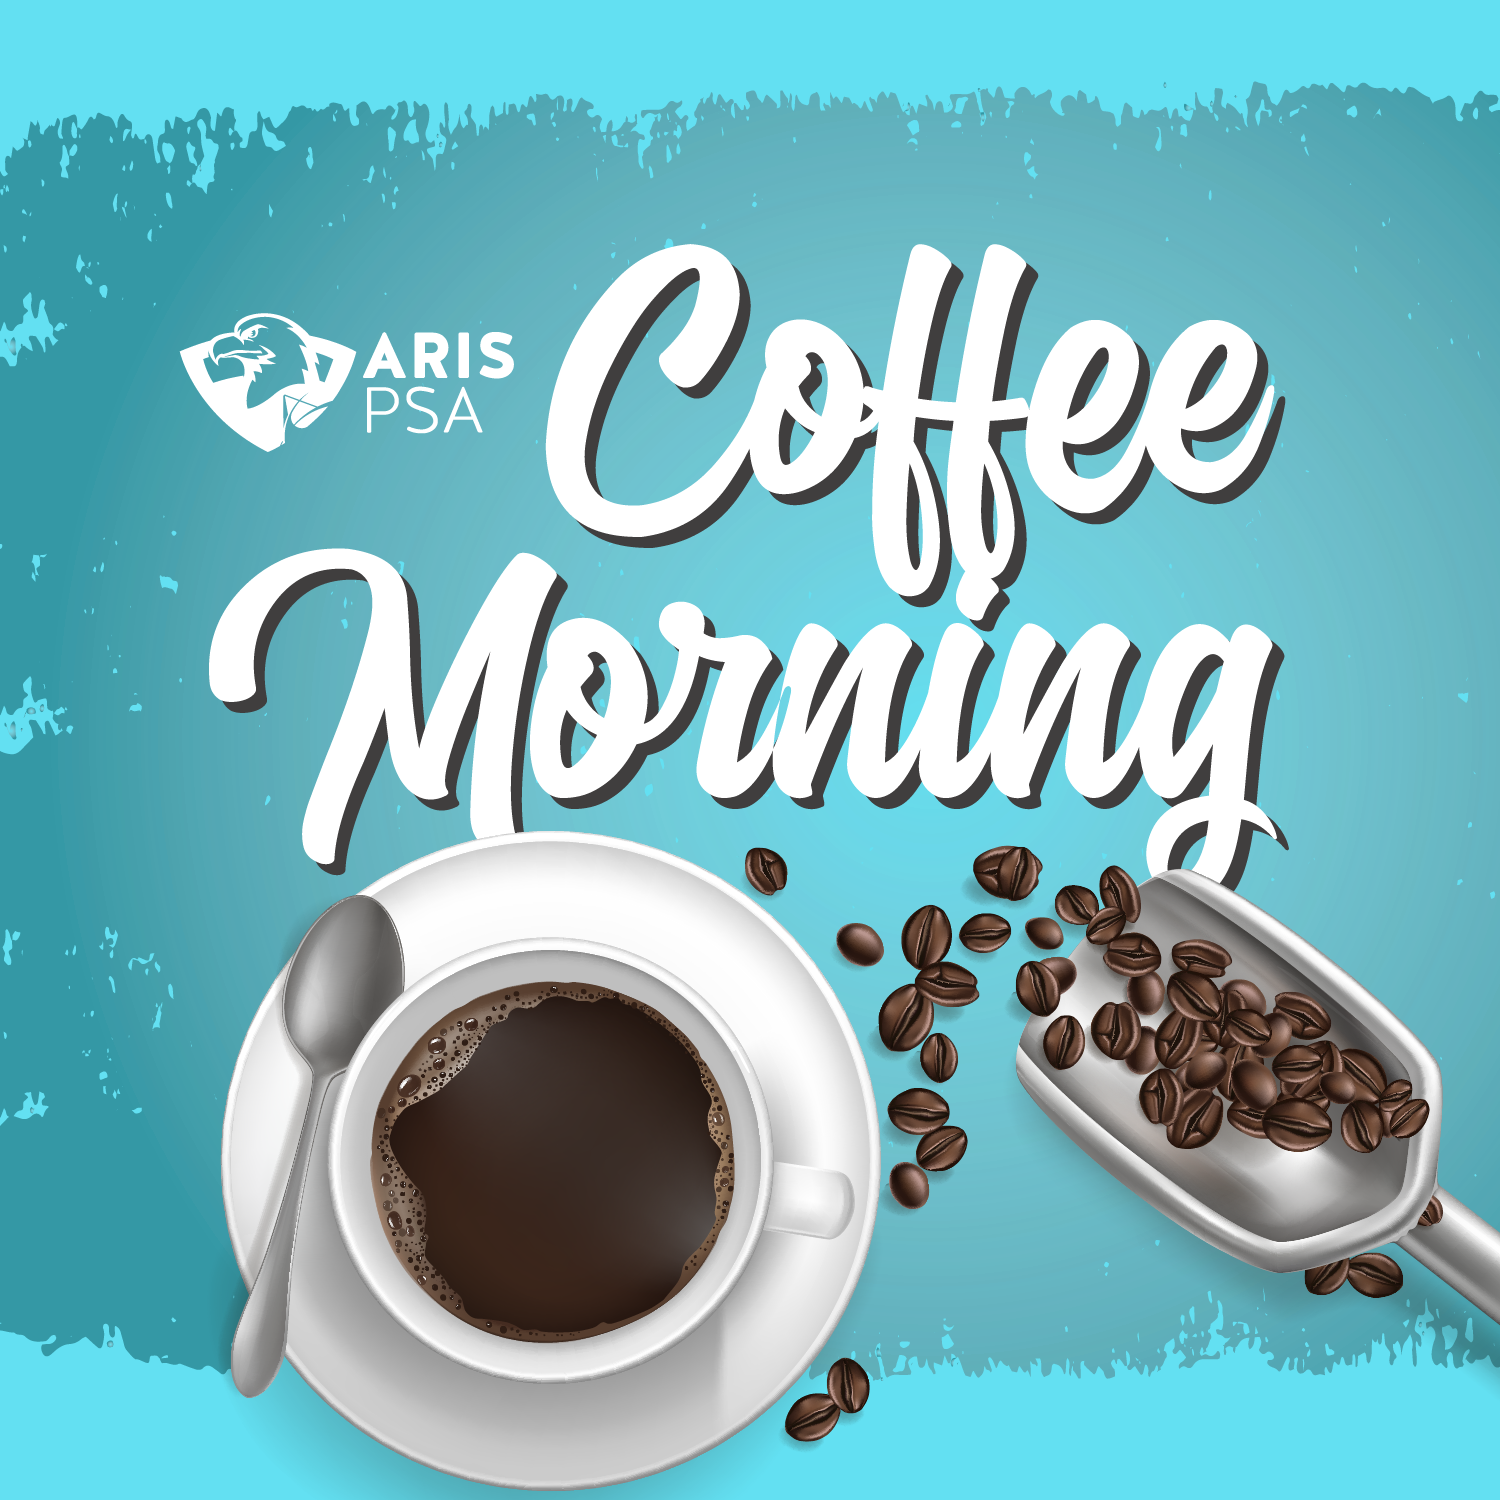 ARIS PSA Coffee Morning Kicks off the 2019/20 Session